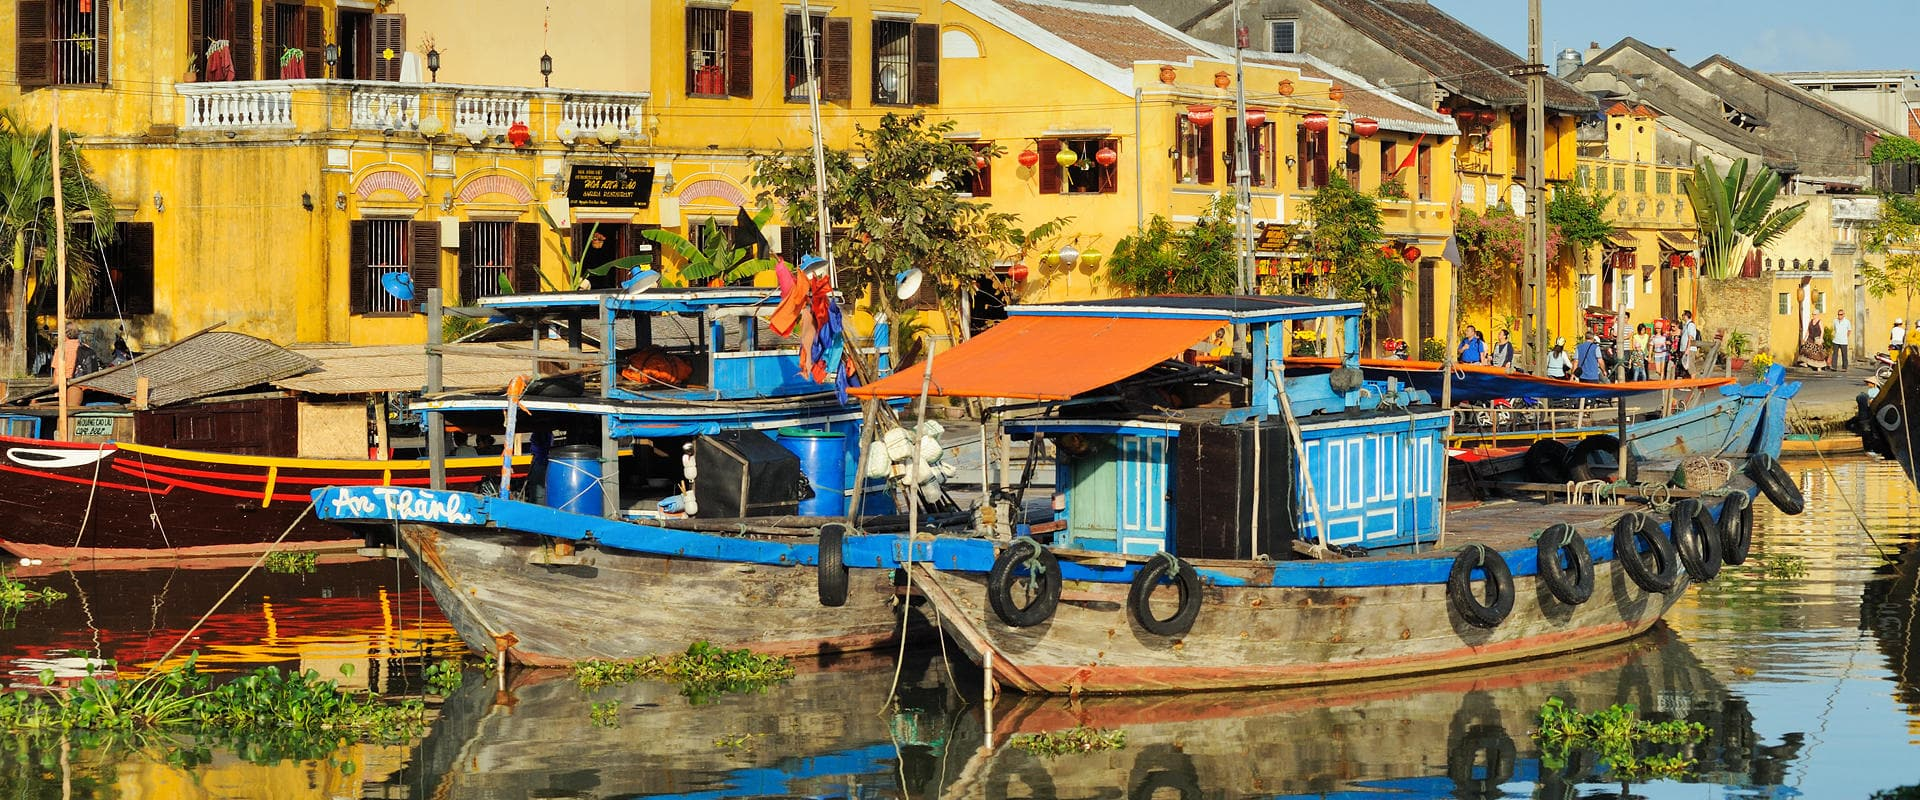 The Grantourismo Travel Guide to Hoi An, Vietnam. Copyright © 2017 Terence Carter / Grantourismo. All Rights Reserved.